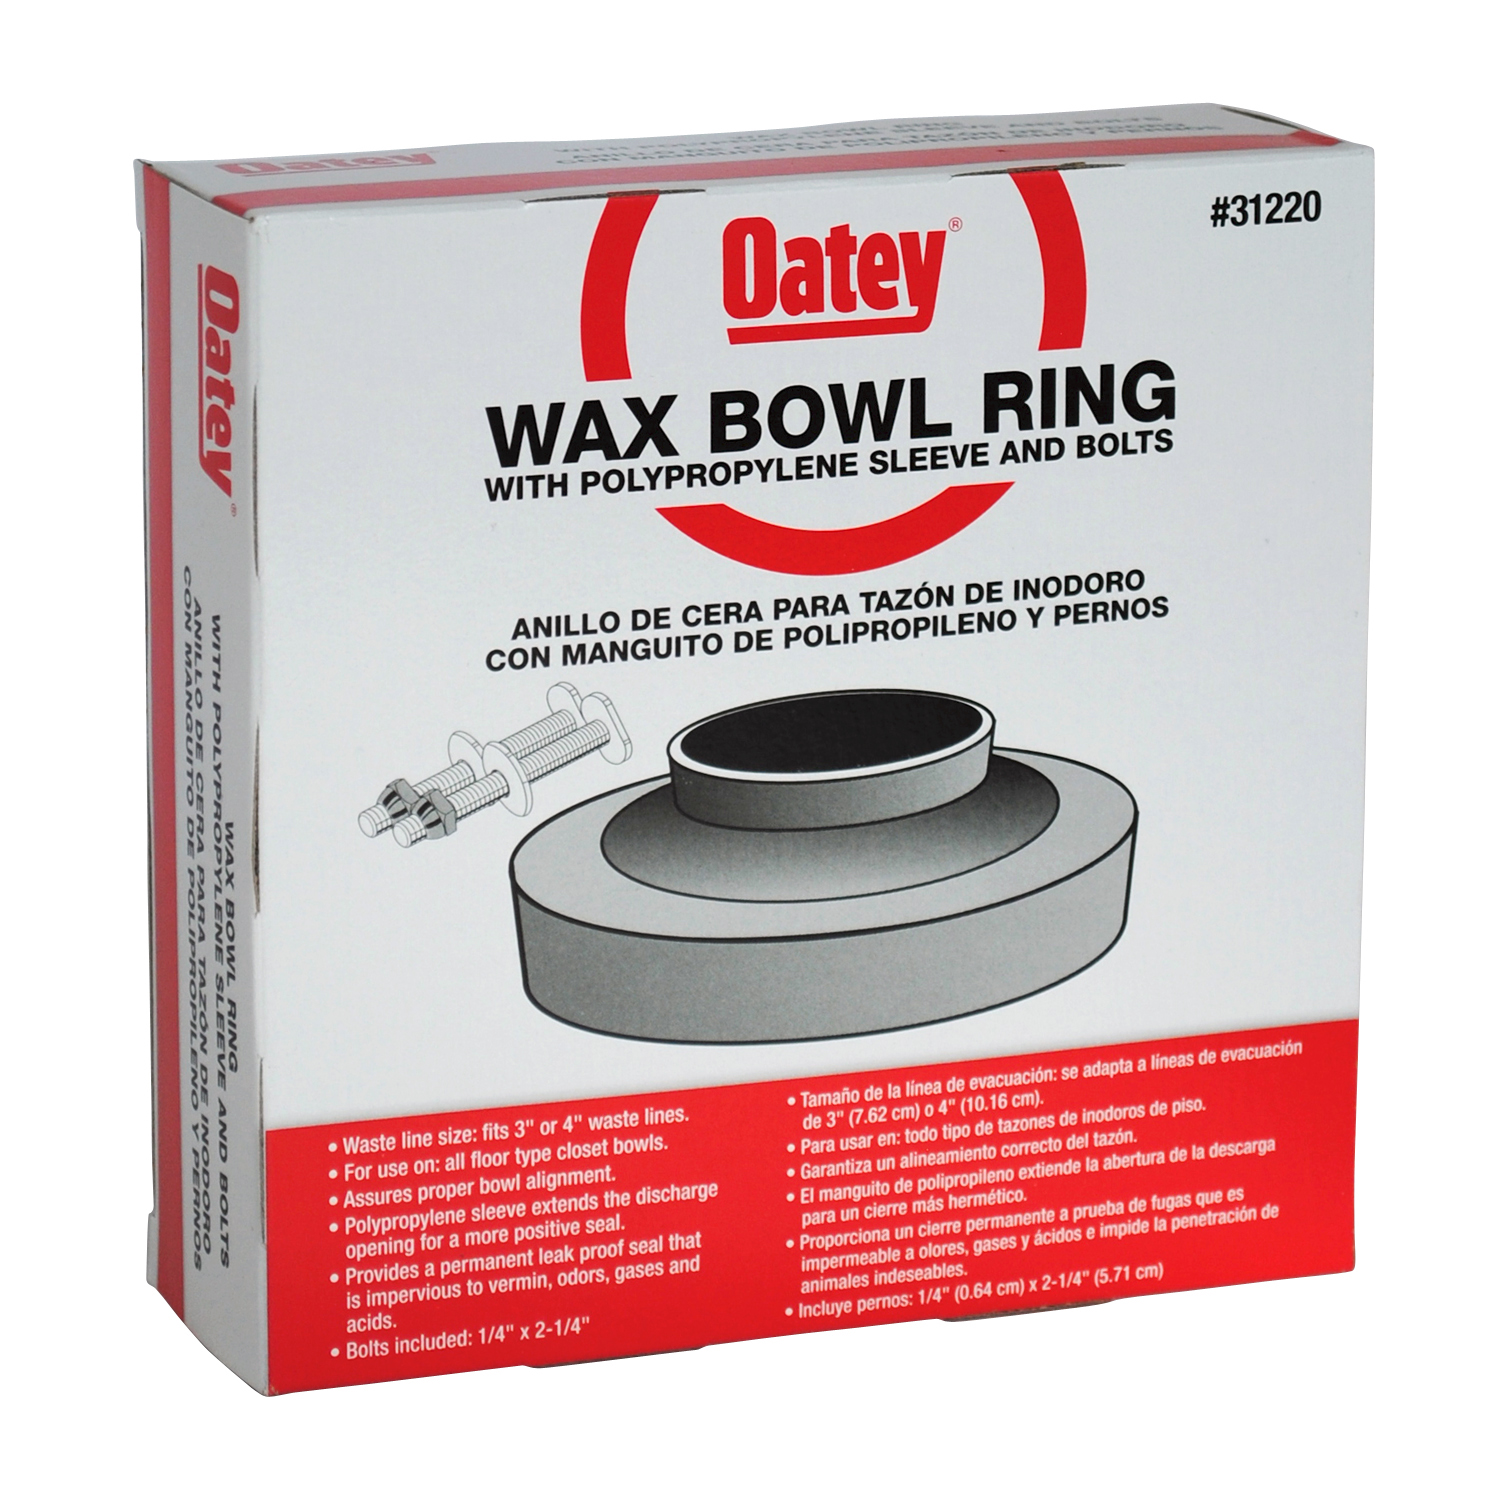 Oatey Wax Bowl Ring with Polypropylene Sleeve and Bolts